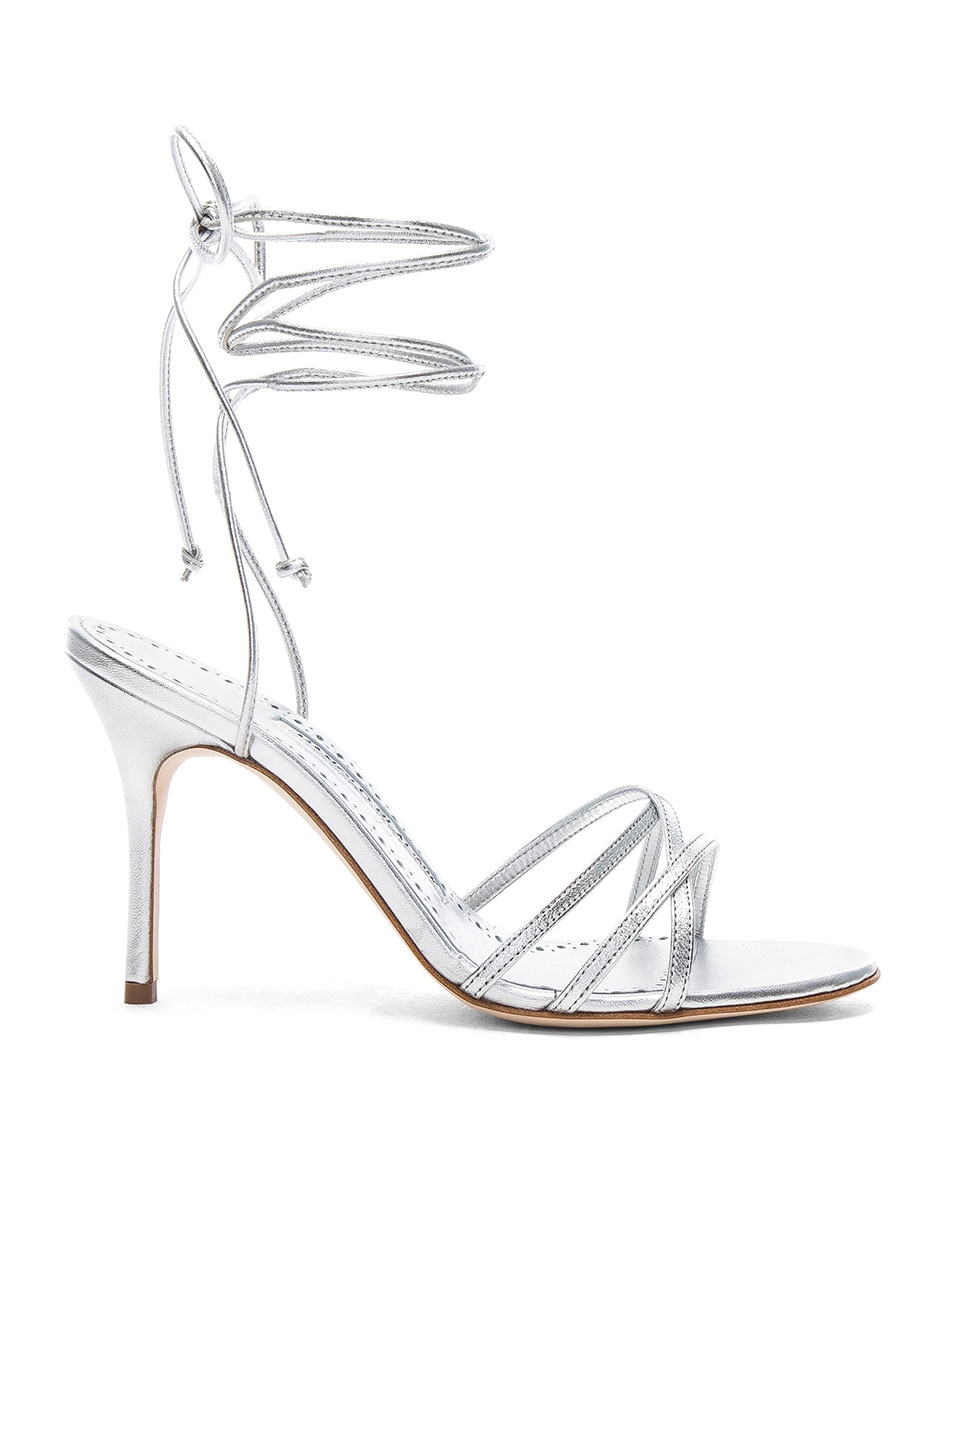 c9543caa7a3 Image 1 of Manolo Blahnik Leather Leva 90 Sandals in Silver Leather